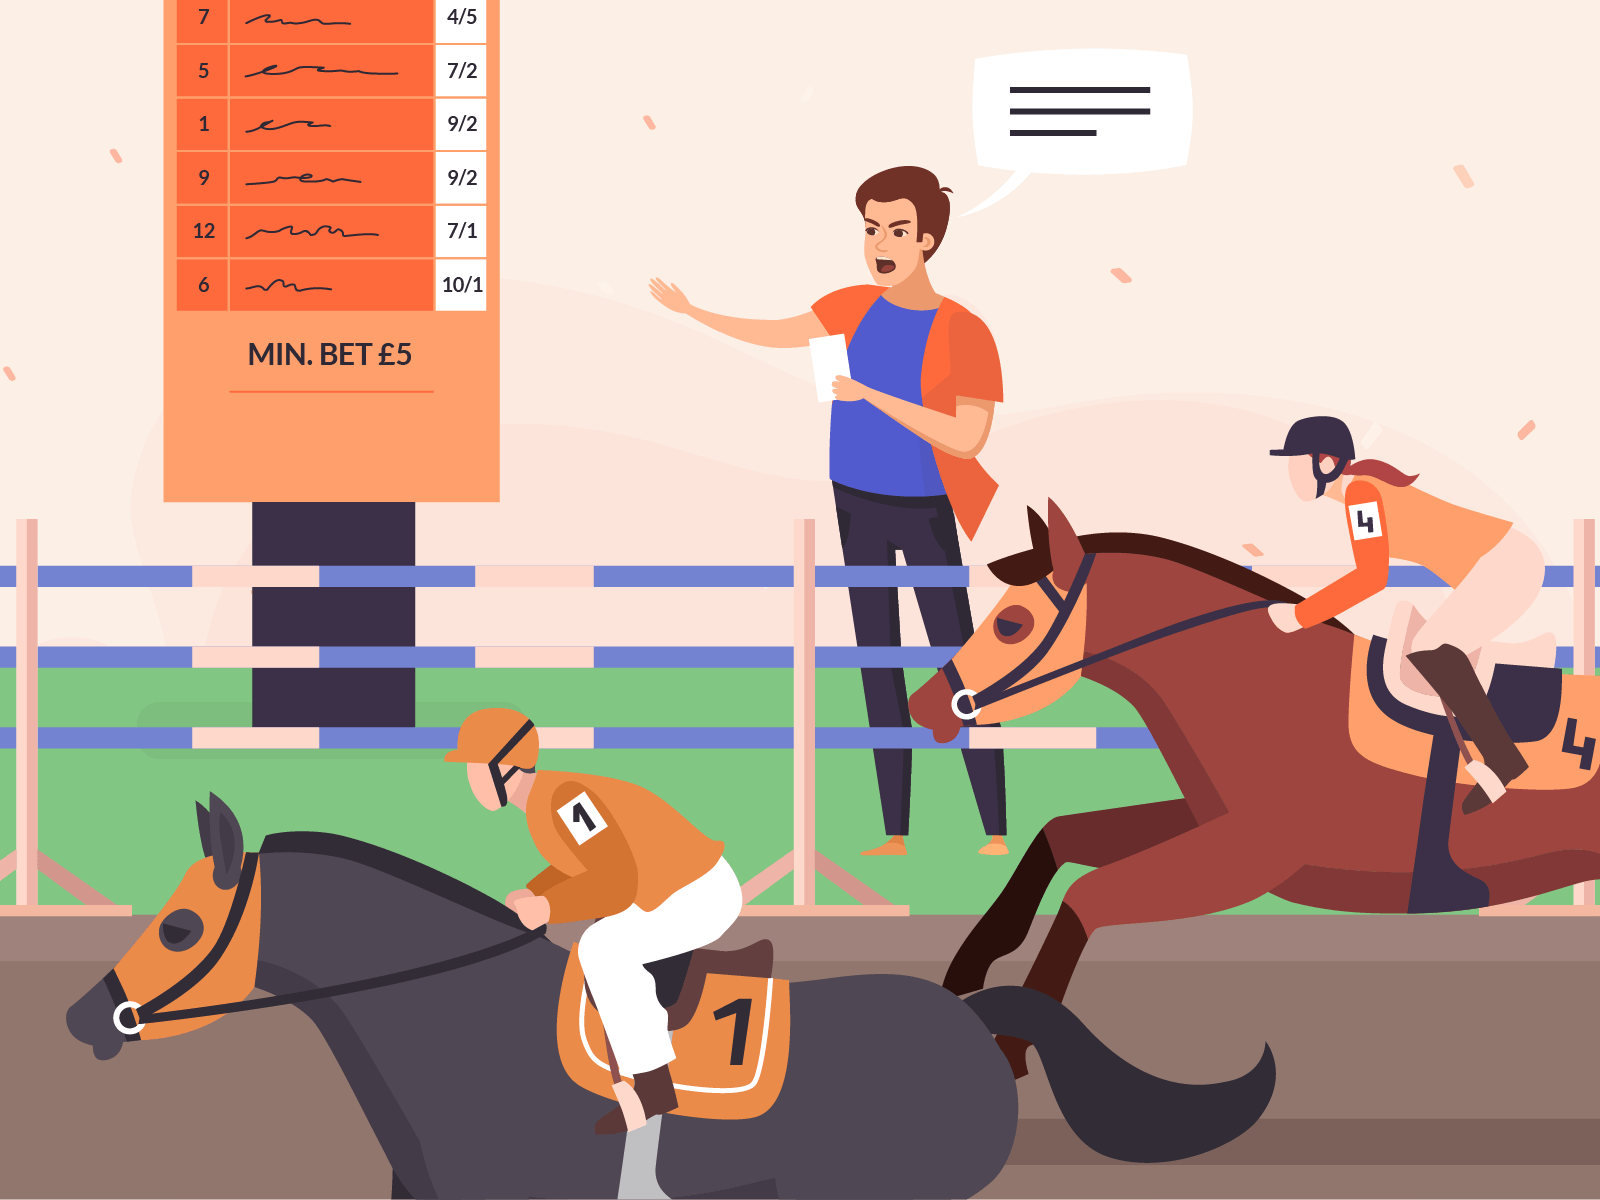 How To Become A Bookmaker - Requirements & Tips